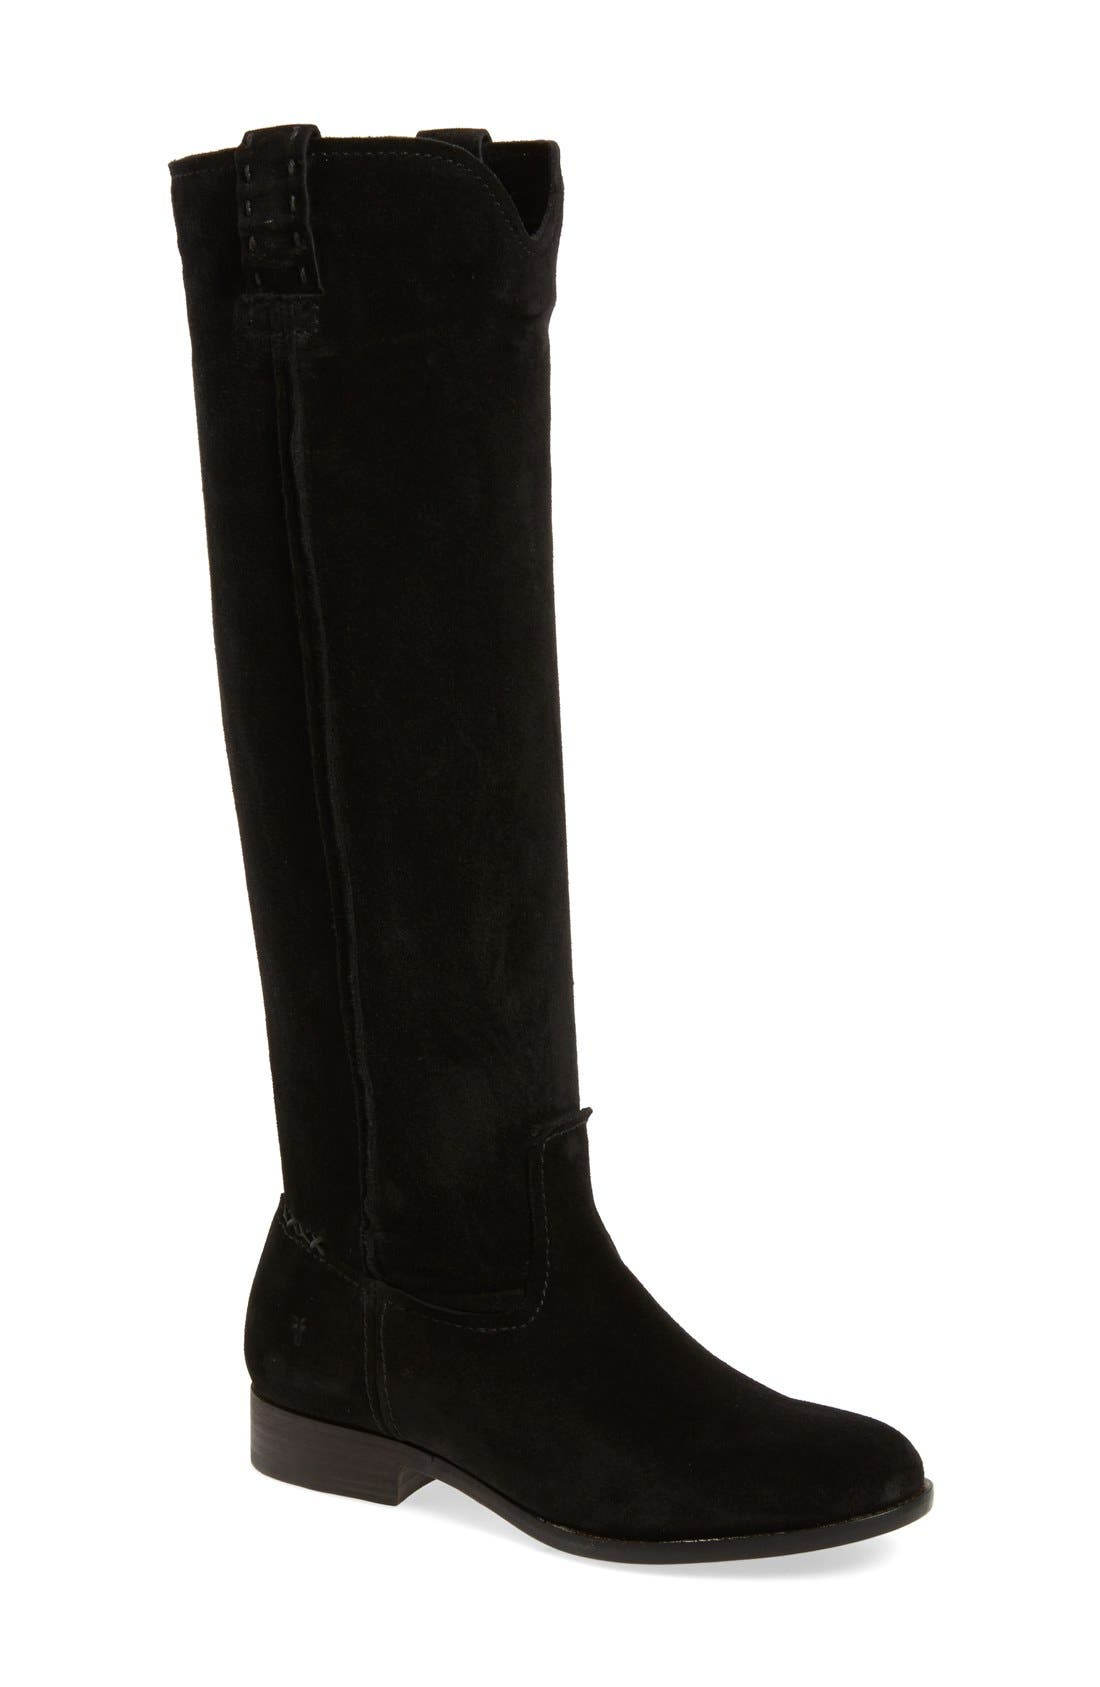 Main Image - Frye 'Cara' Tall Boot (Women)